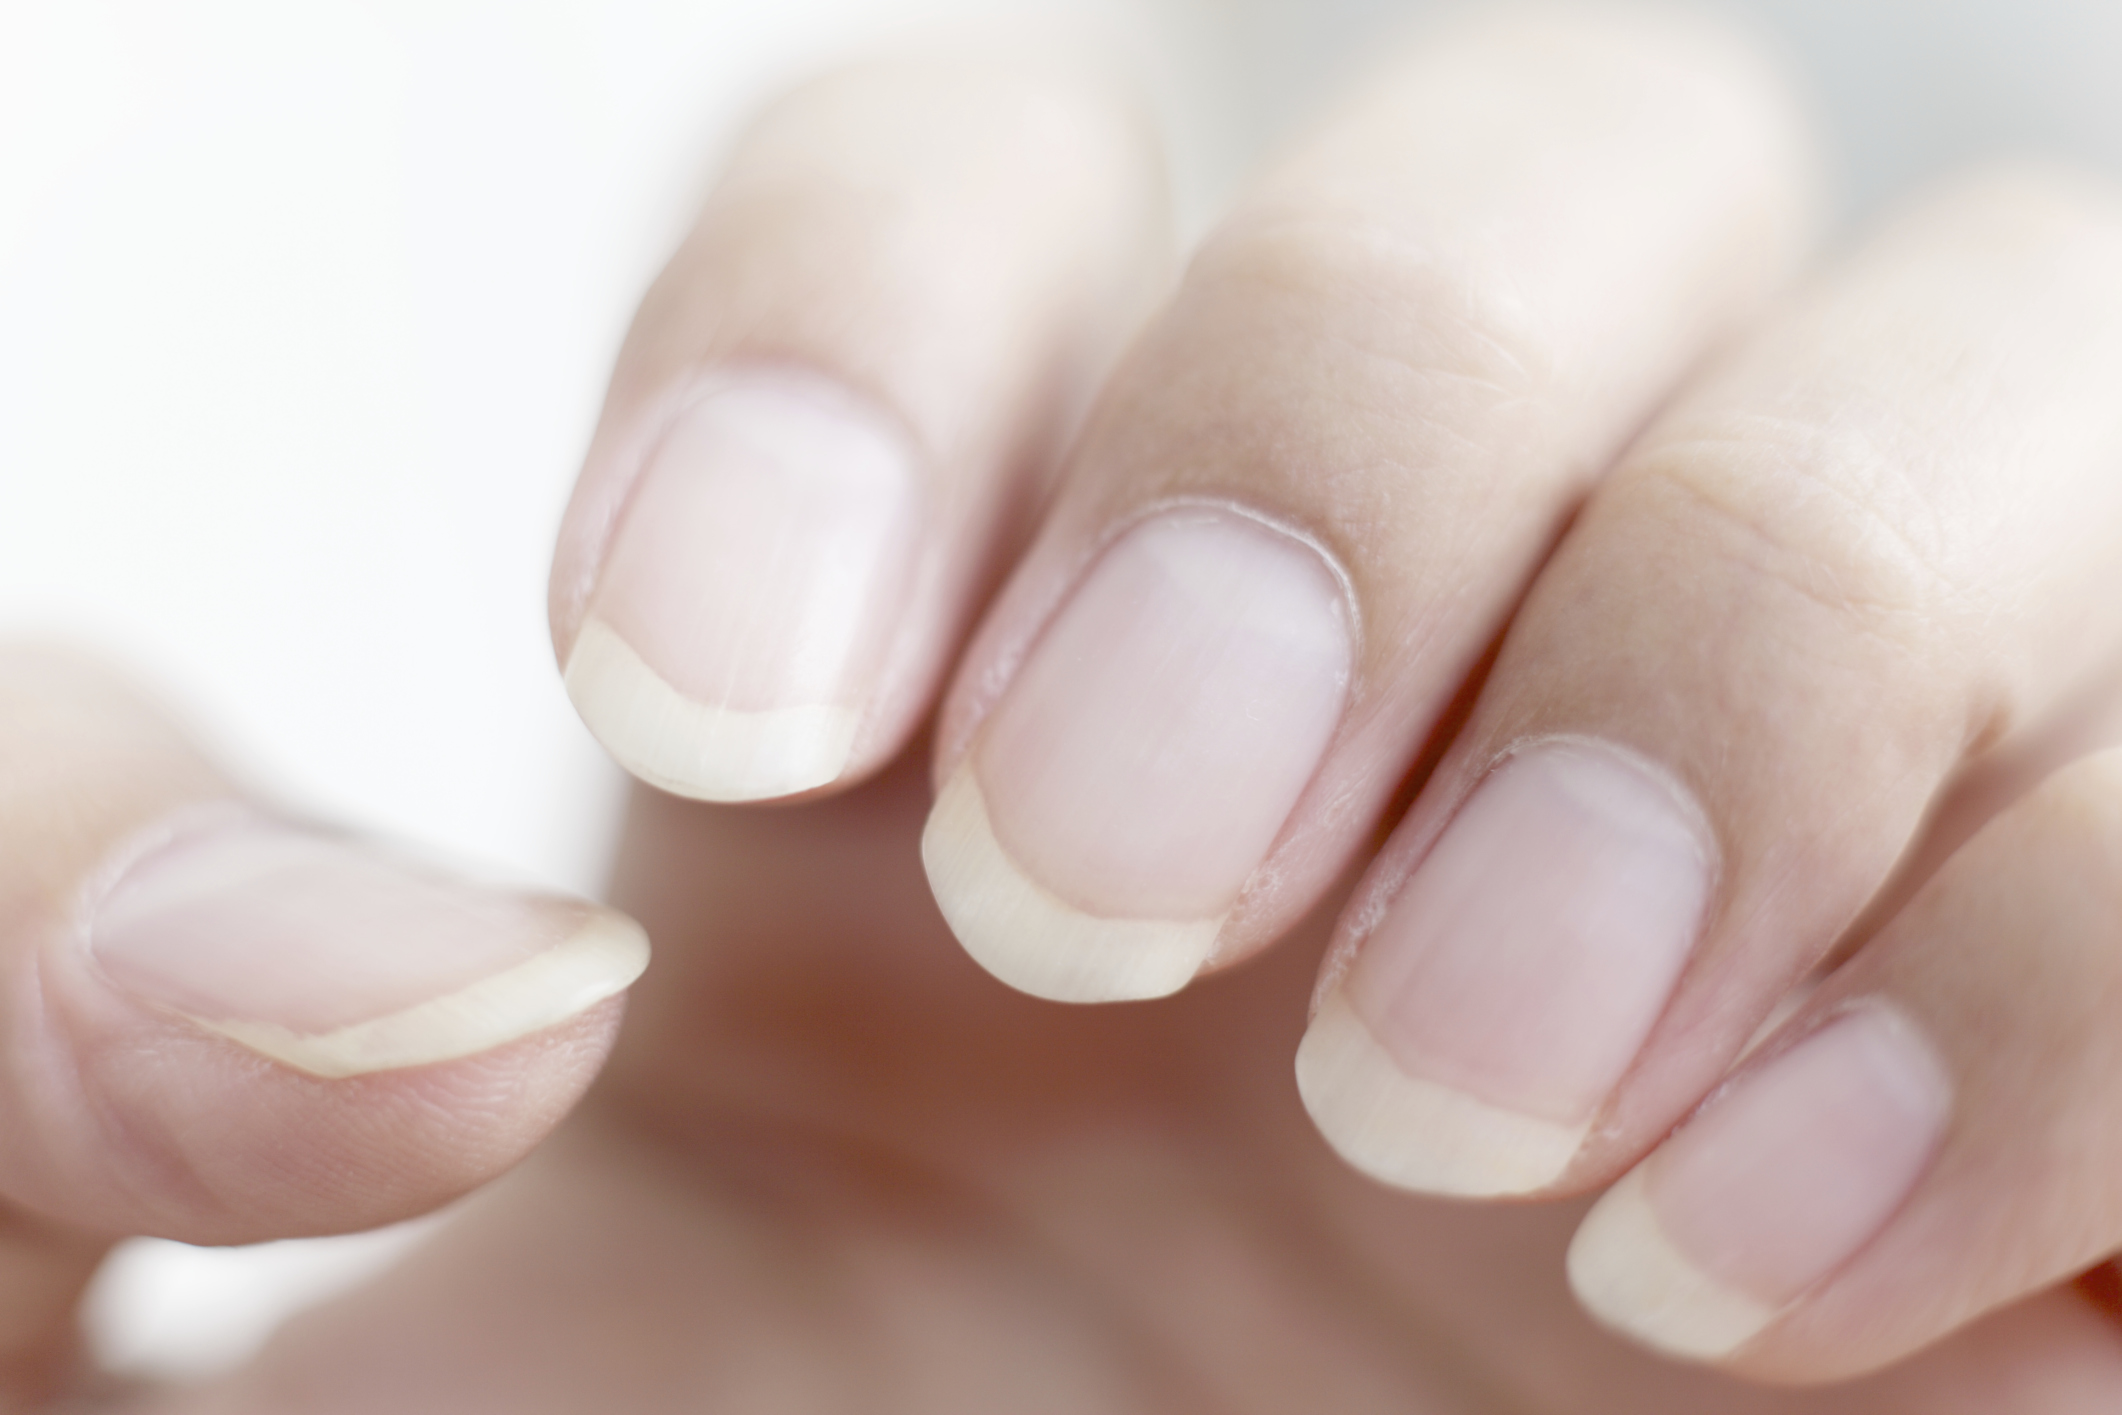 Are Ridged Nails and Dry Skin a Sign of Vitamin Deficiency ...